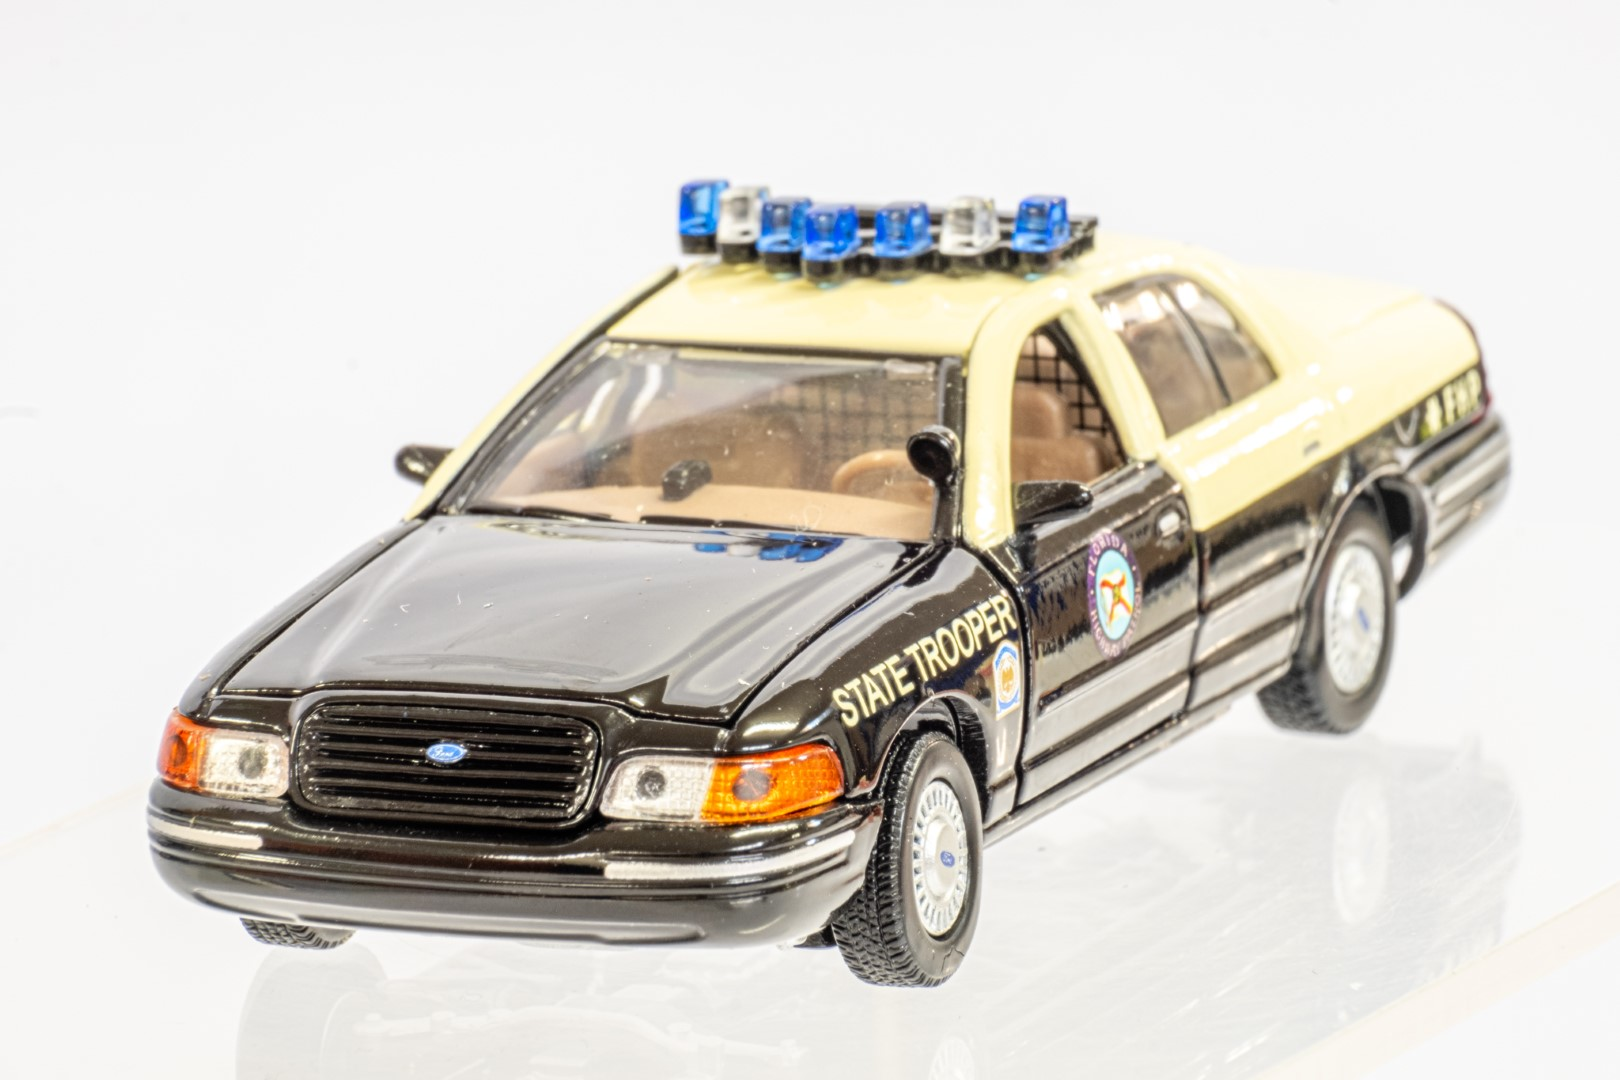 2 x American Police Cars - Image 11 of 12